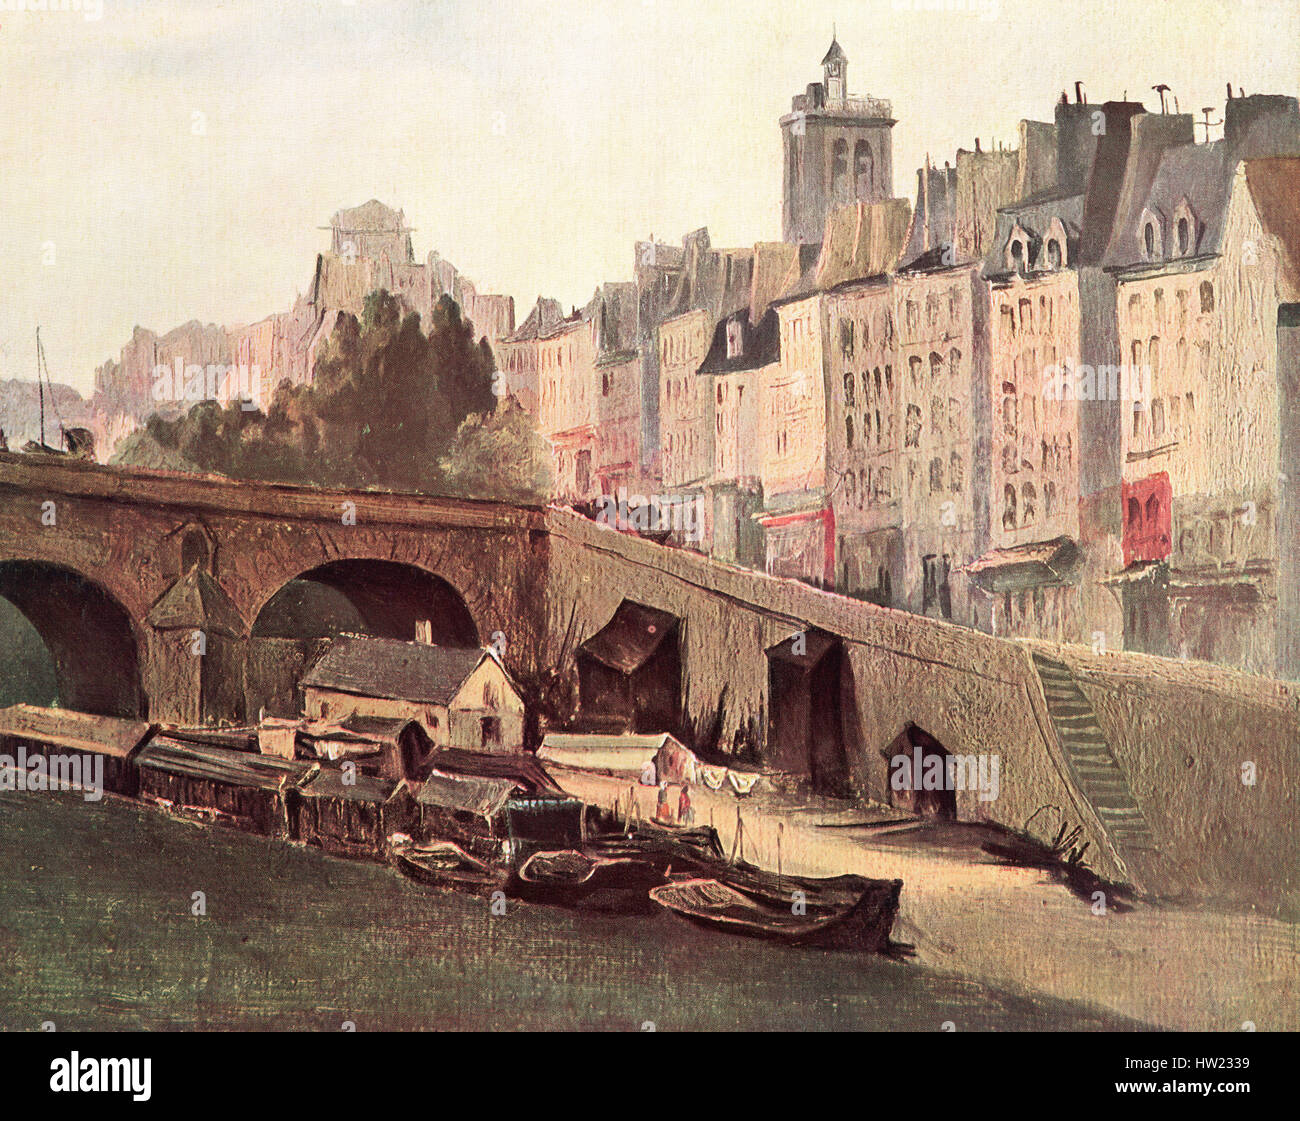 Le Pont Marie, Paris, France in the 19th century,  After the painting by Charles Francois Daubigny.. - Stock Image